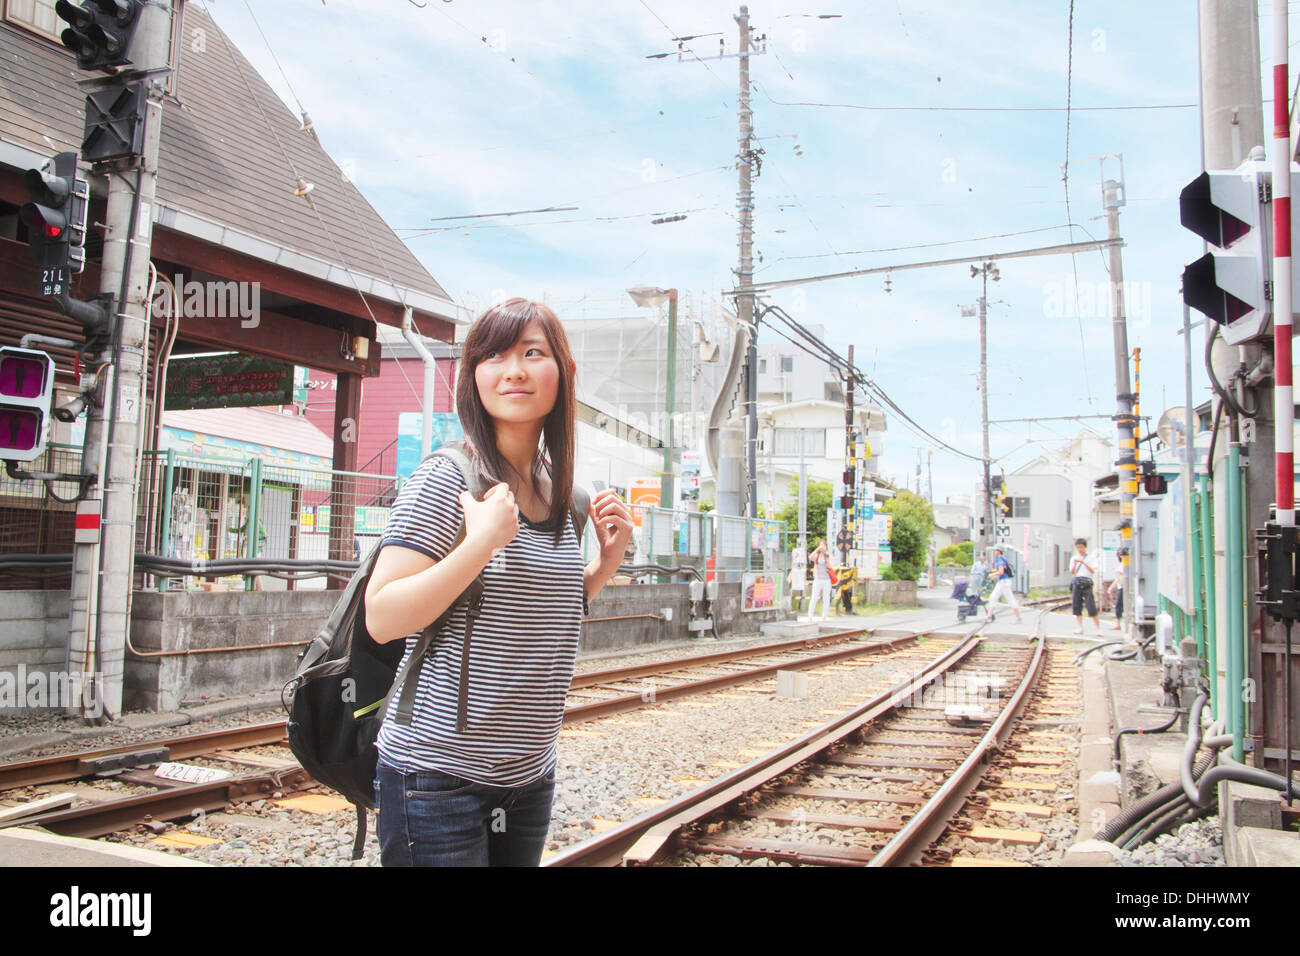 Young woman crossing level crossing over train tracks - Stock Image